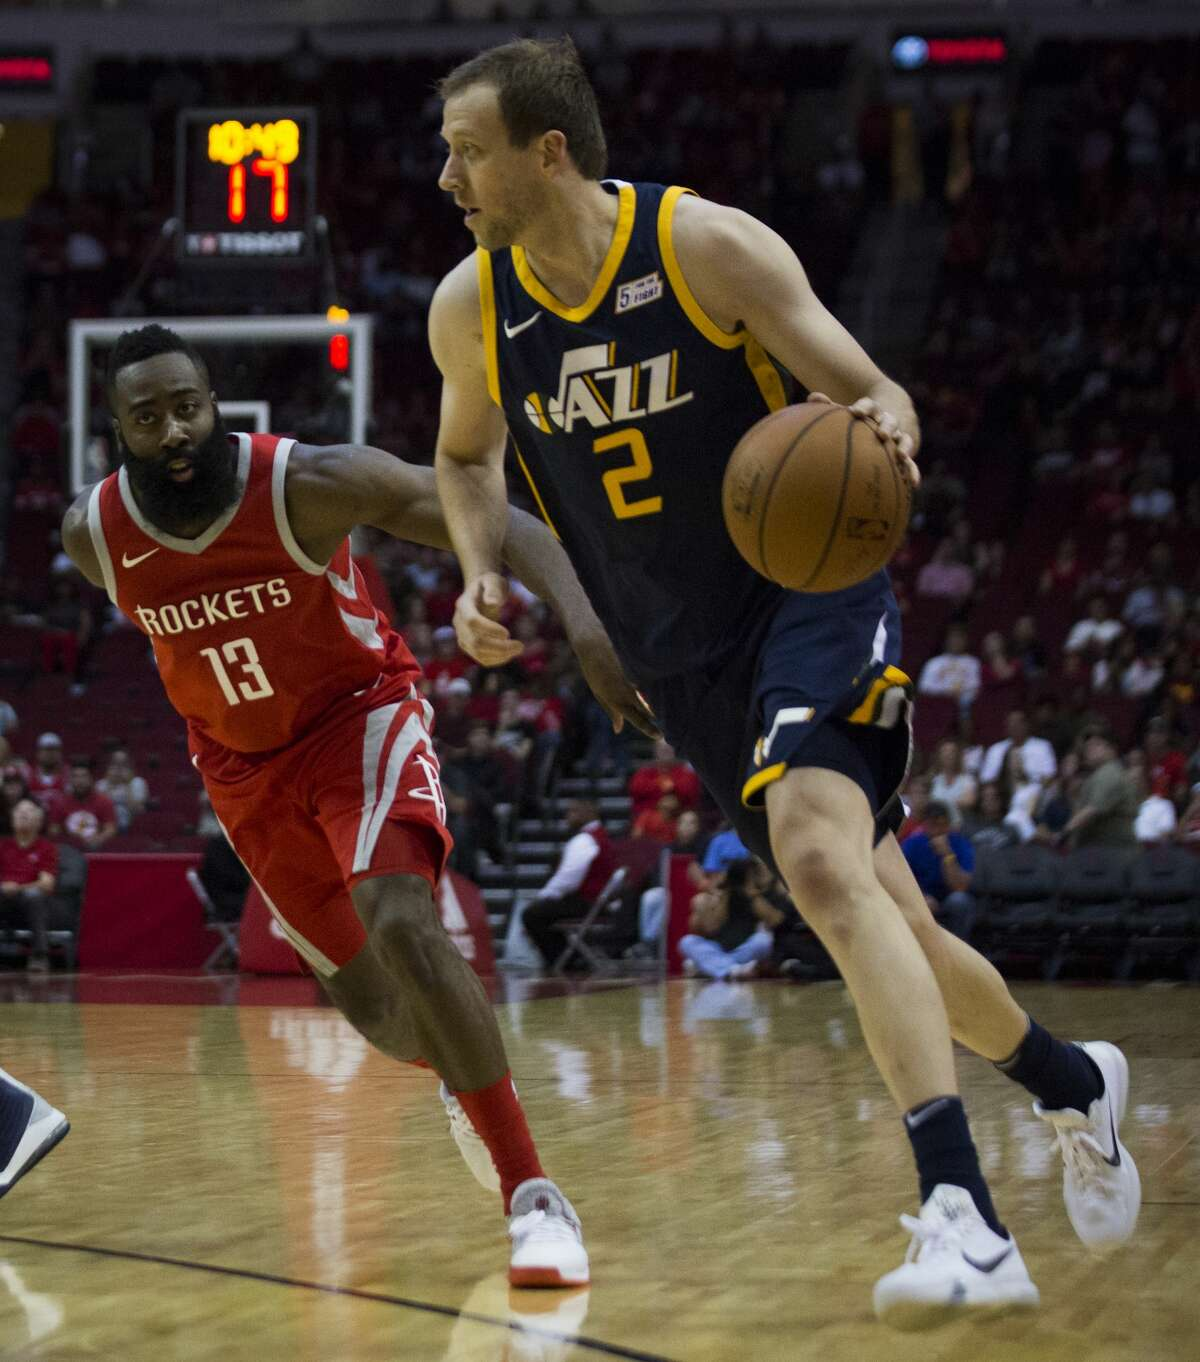 Utah Jazz forward Joe Ingles (2) is defended by Houston Rockets guard James Harden (13) during first half of the game on Sunday, Nov. 5, 2017, in Houston. ( Marie D. De Jesus / Houston Chronicle )